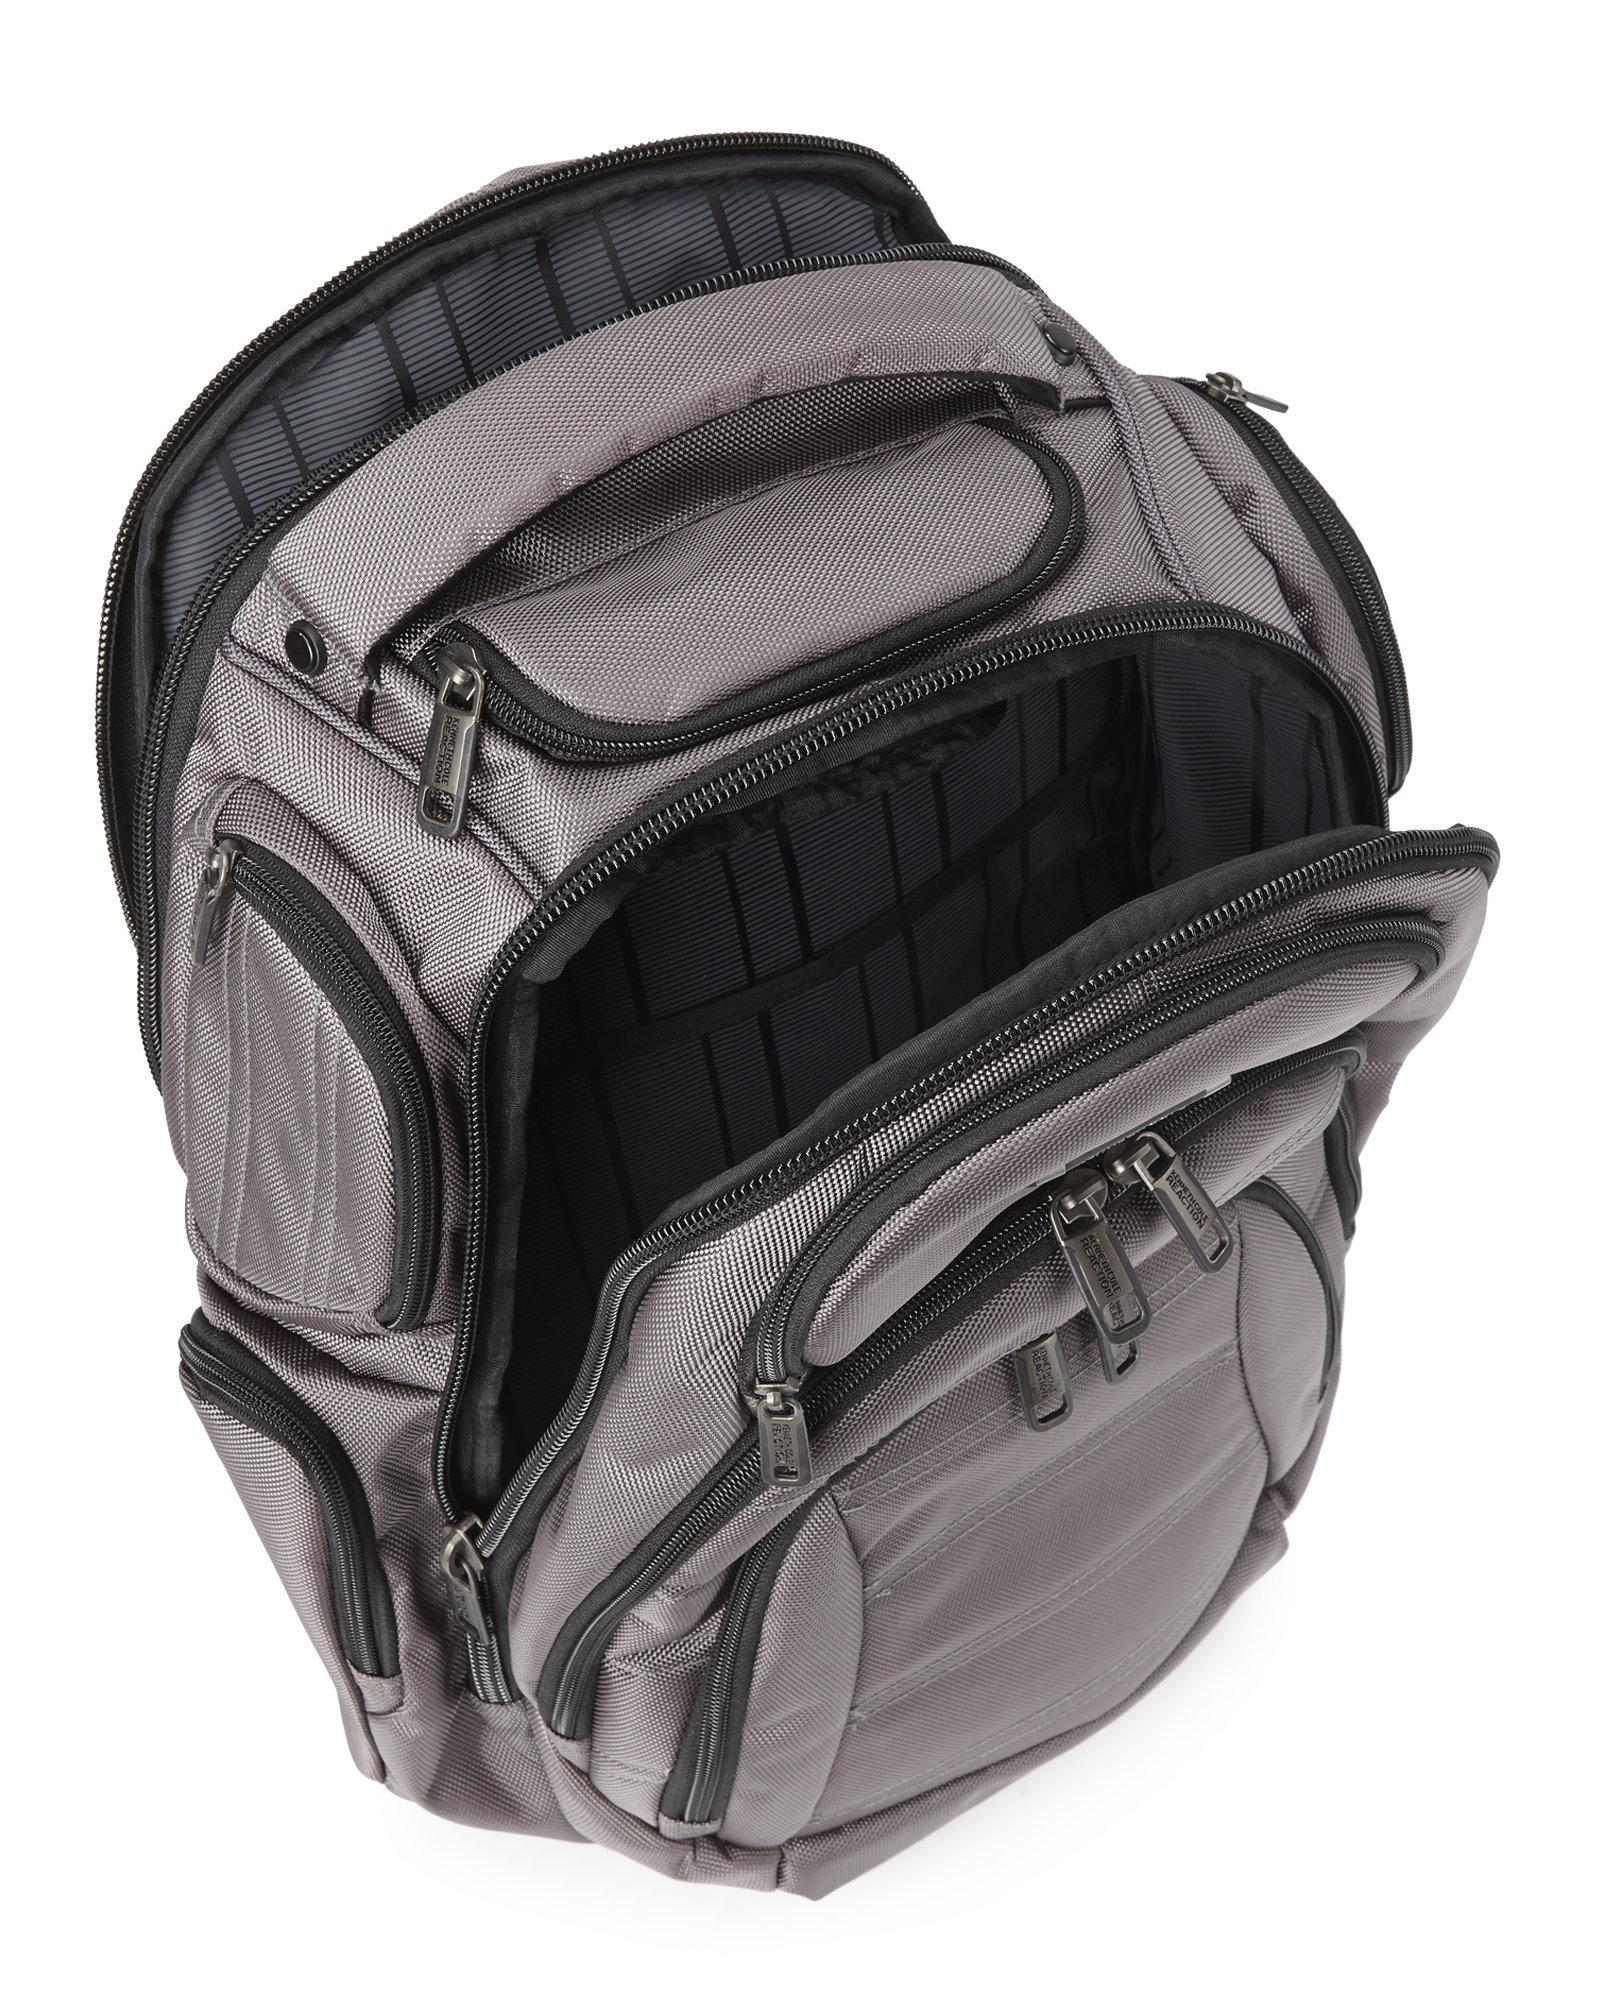 c540543f5 Kenneth Cole Reaction Pack Of All Trades Backpack in Gray for Men - Lyst